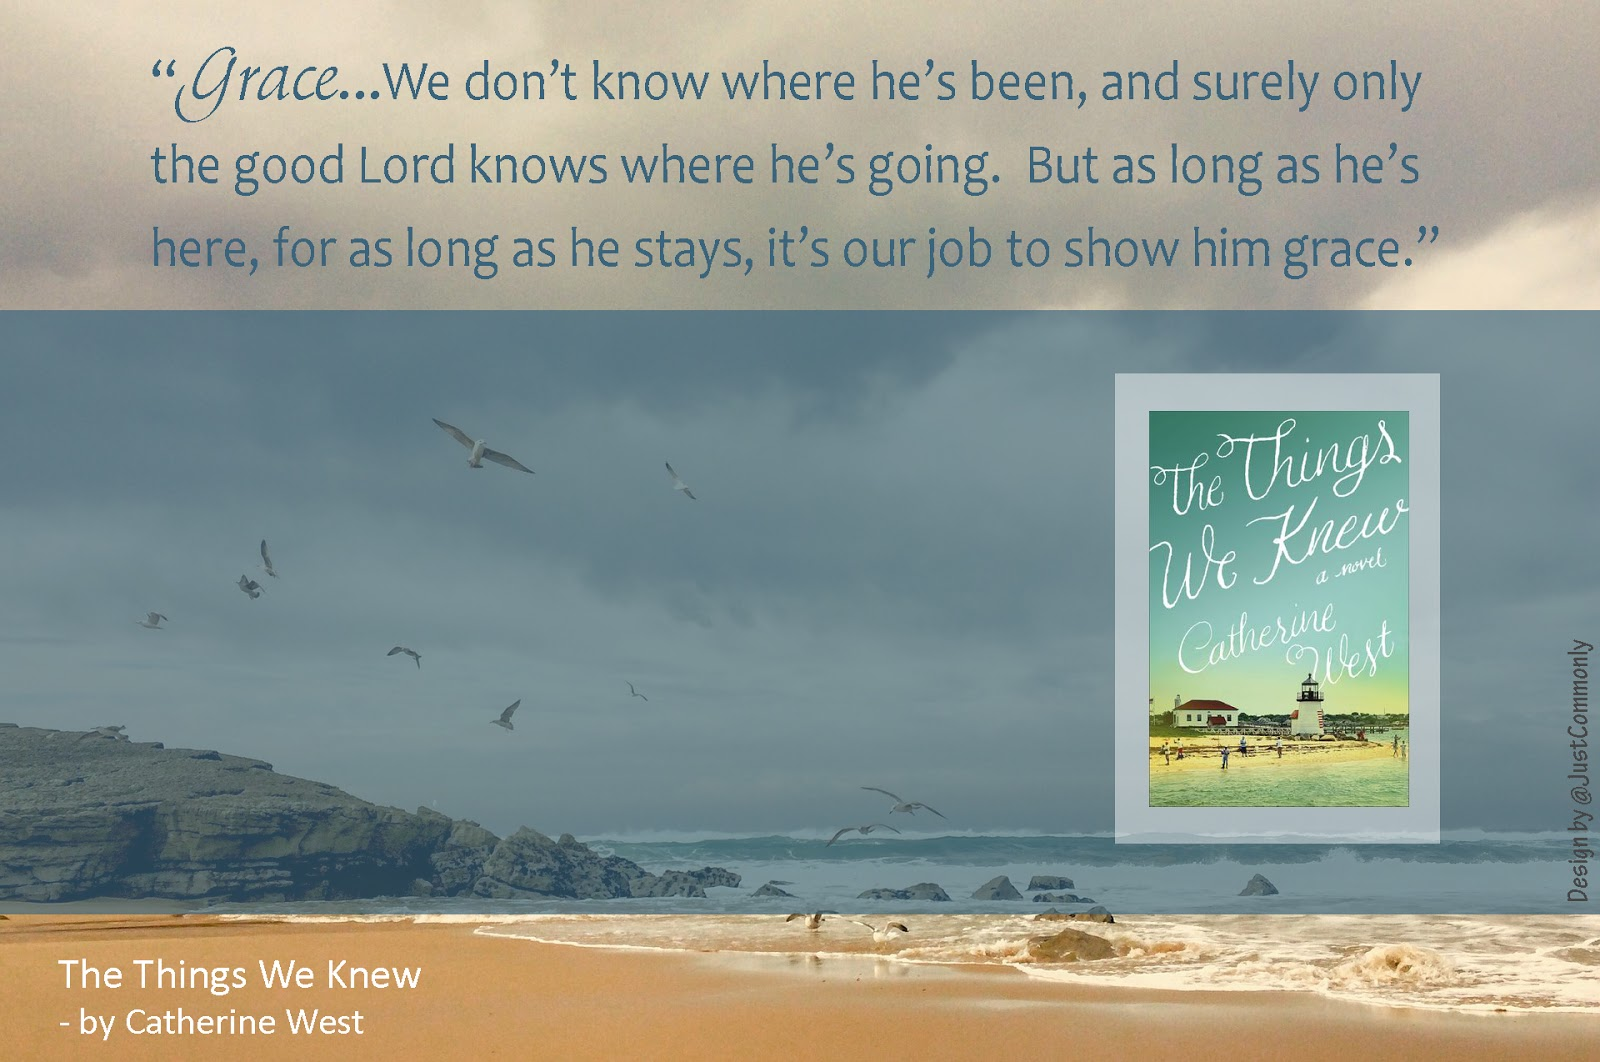 It has it all - romance, mystery, developed characters, plot and a message  that will have you reflect on the things you knew as well.